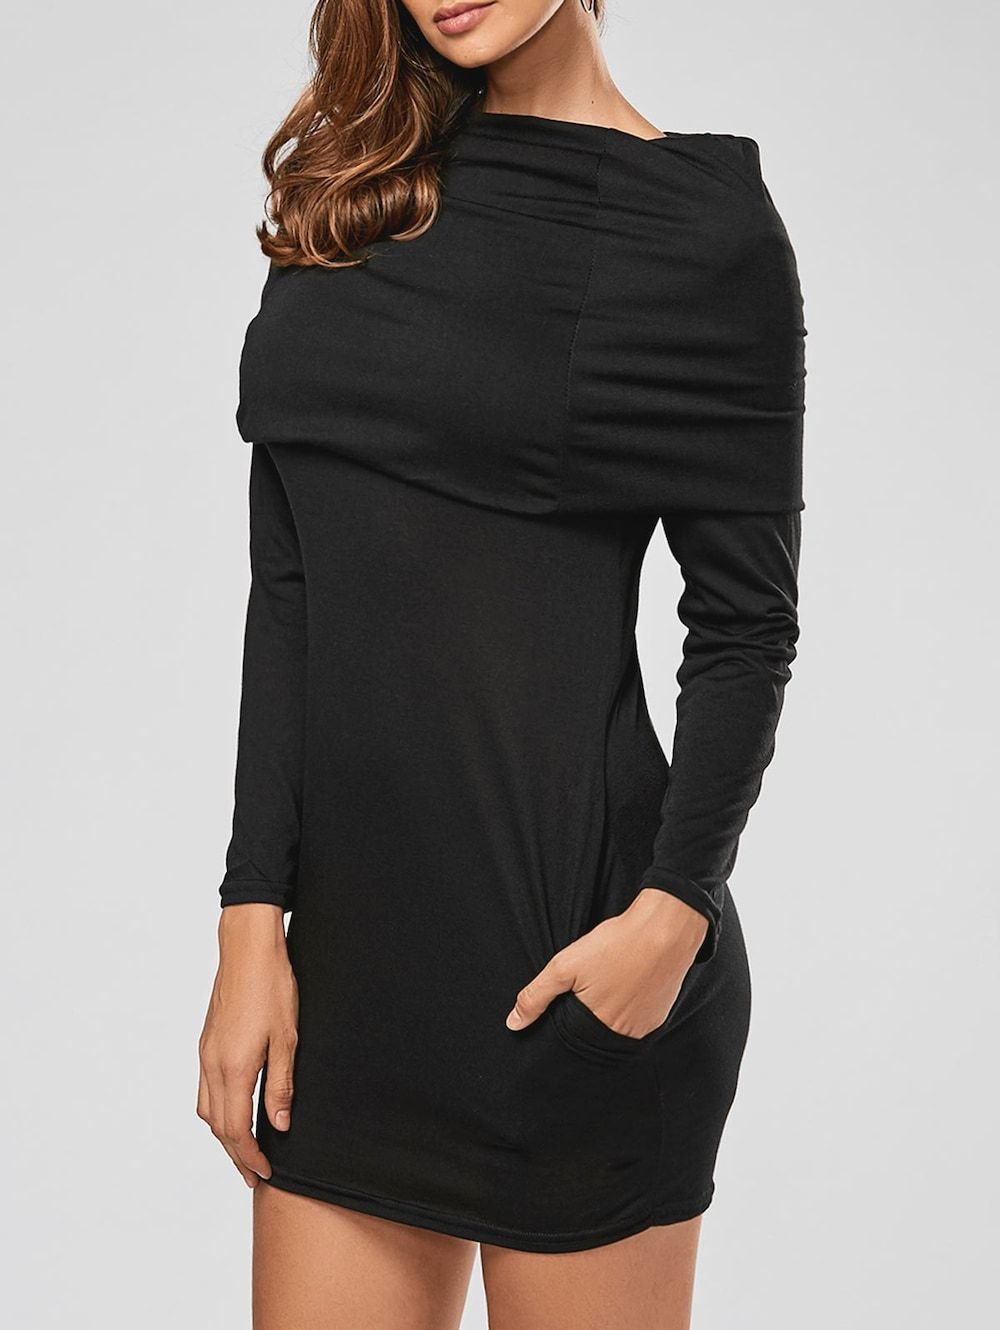 Stylish hooded long sleeve bodycon solid color womenus dress